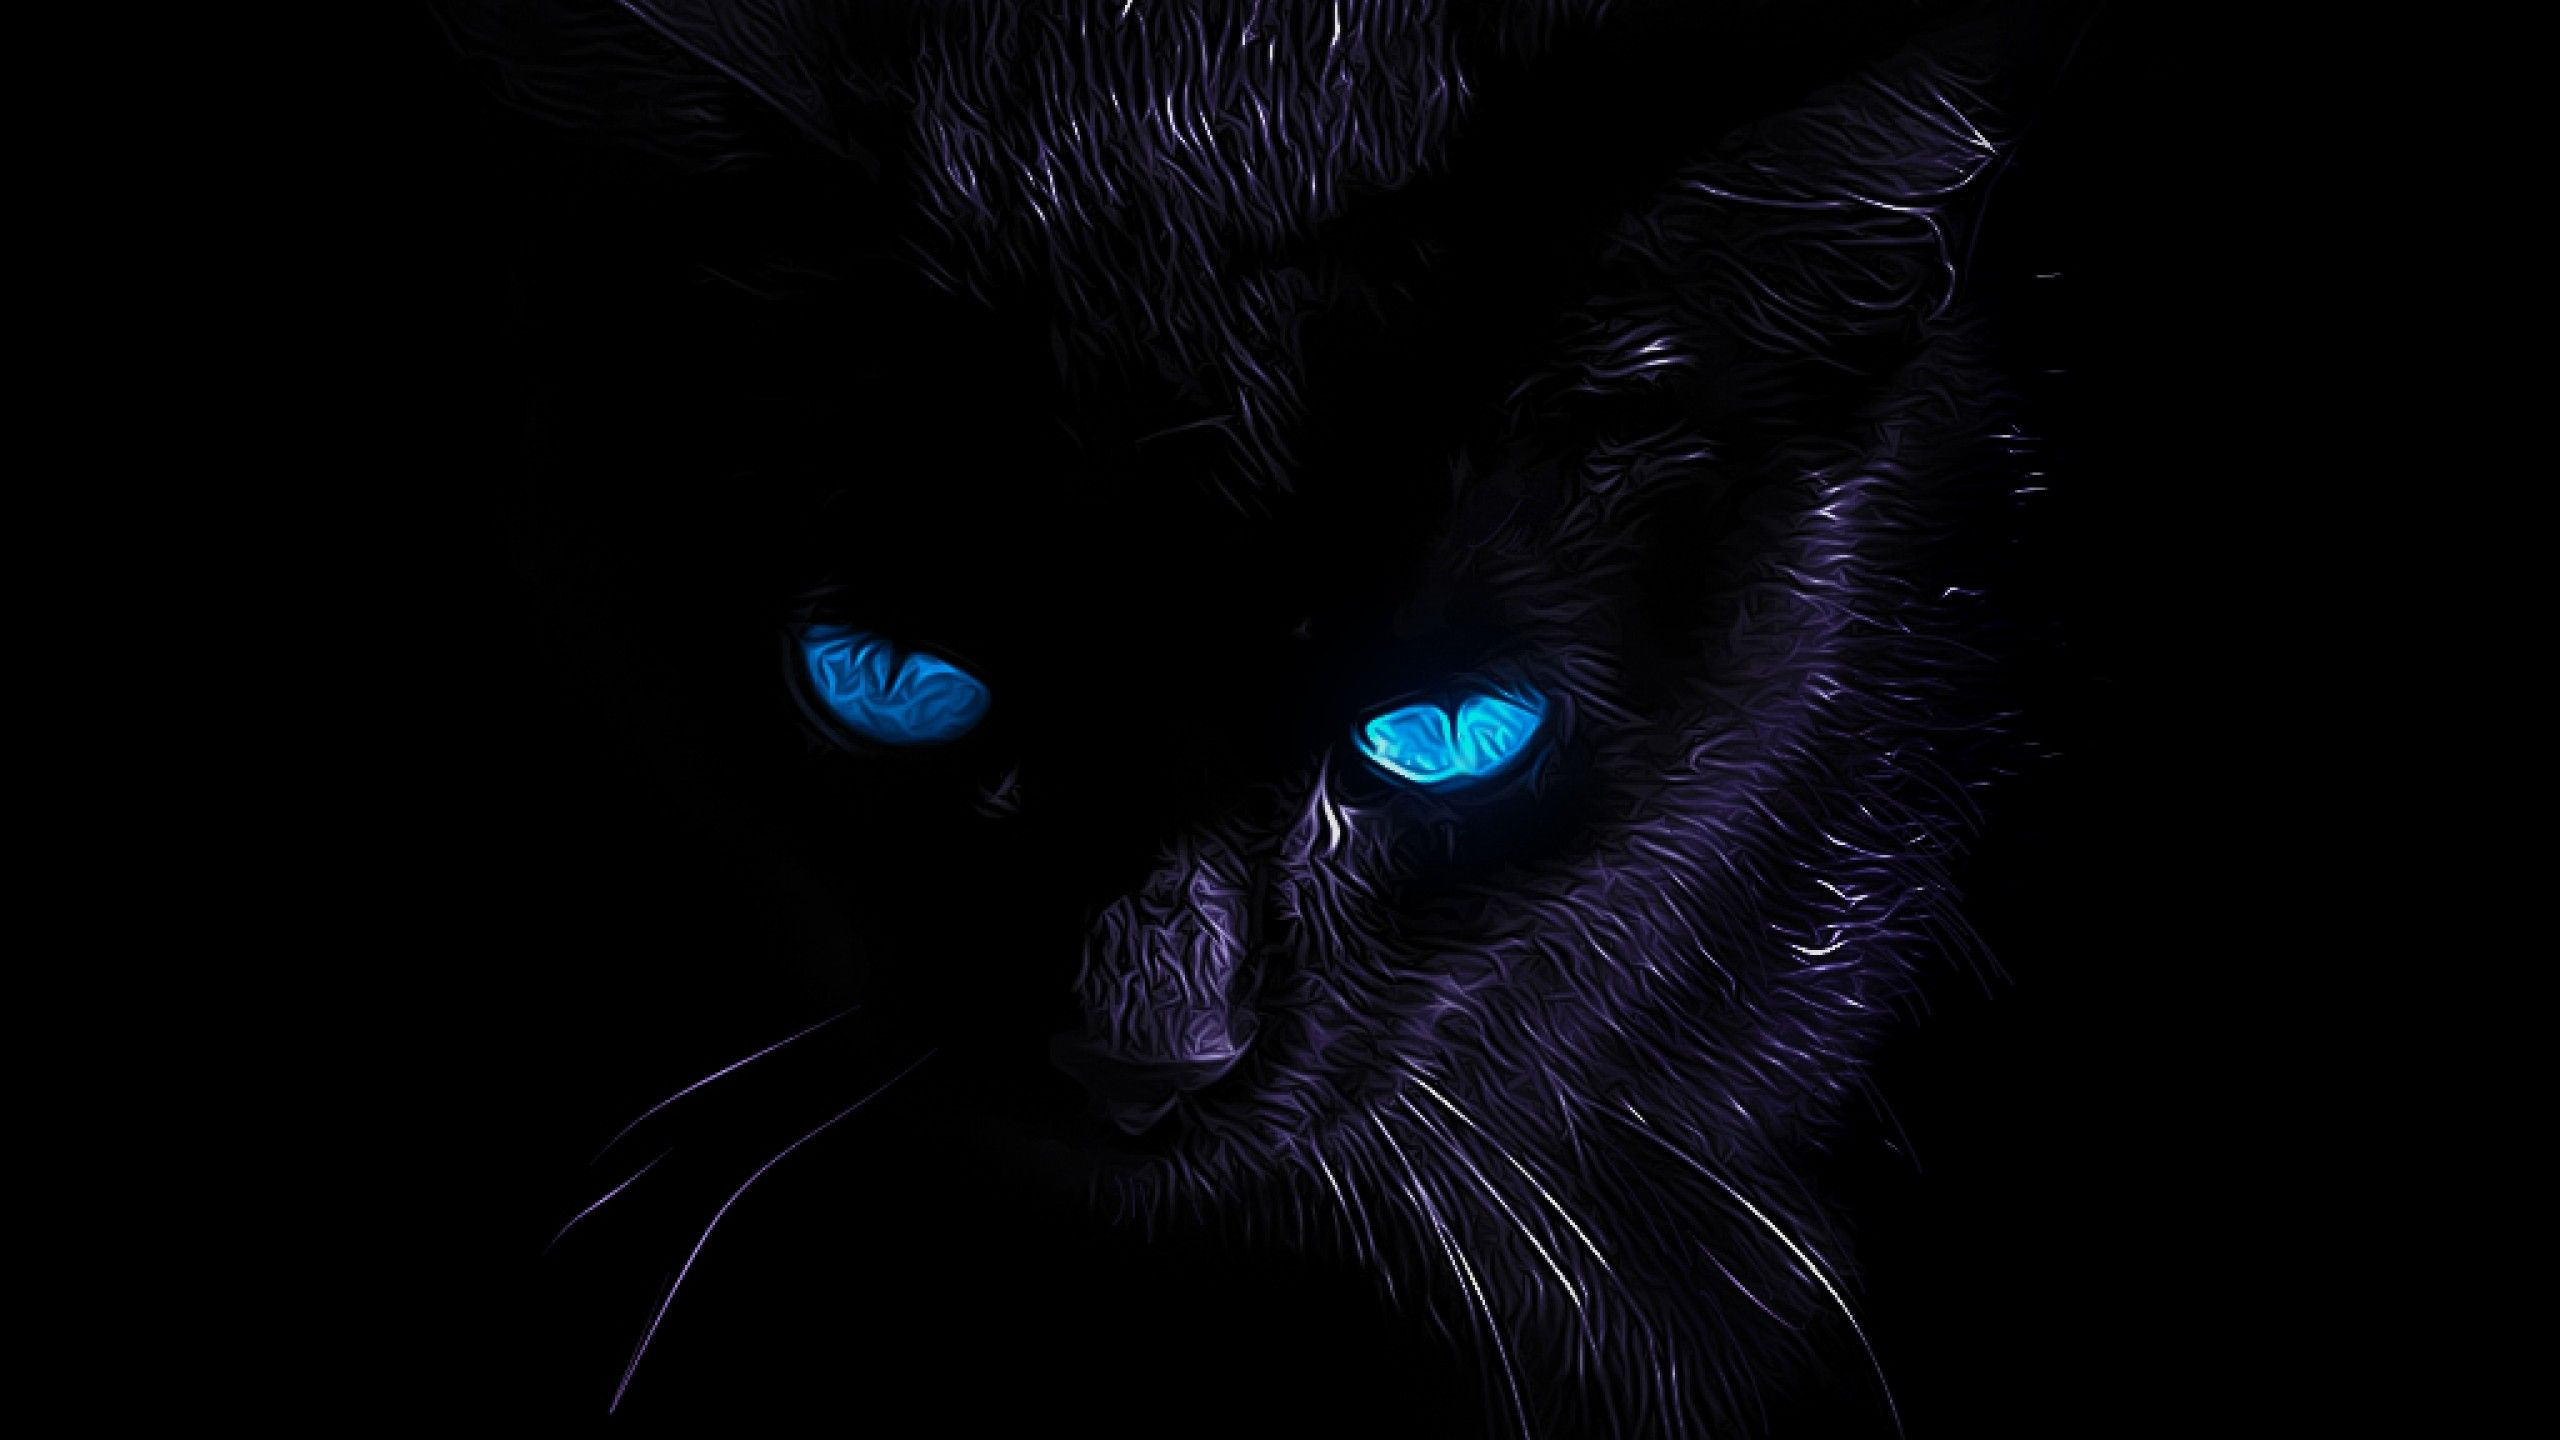 Black Cat Cat With Blue Eyes Cat Wallpaper Cat Background